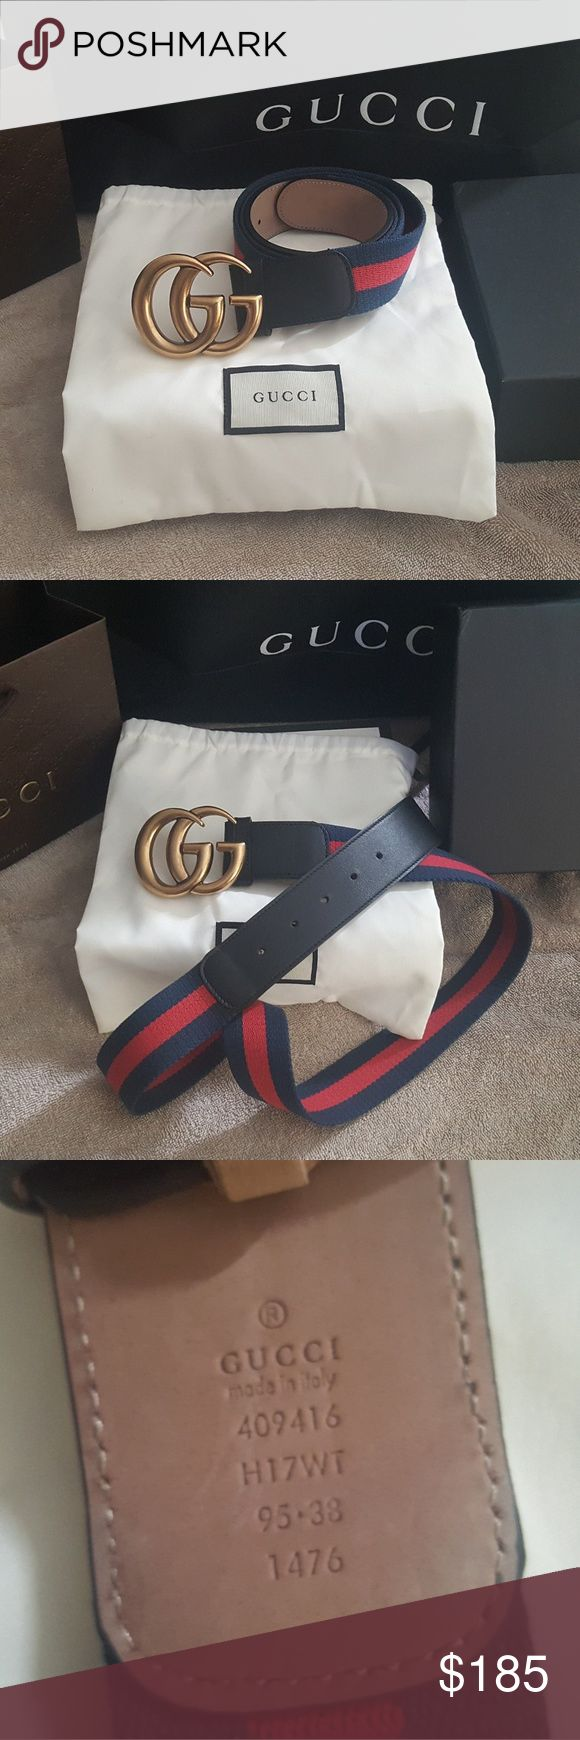 """Nylon web gucci belt"" Brand new with tag Signature blue and red  nylon web gucci belt with a double G buckle comes with box and dust bag...🔥 Gucci Accessories Belts"